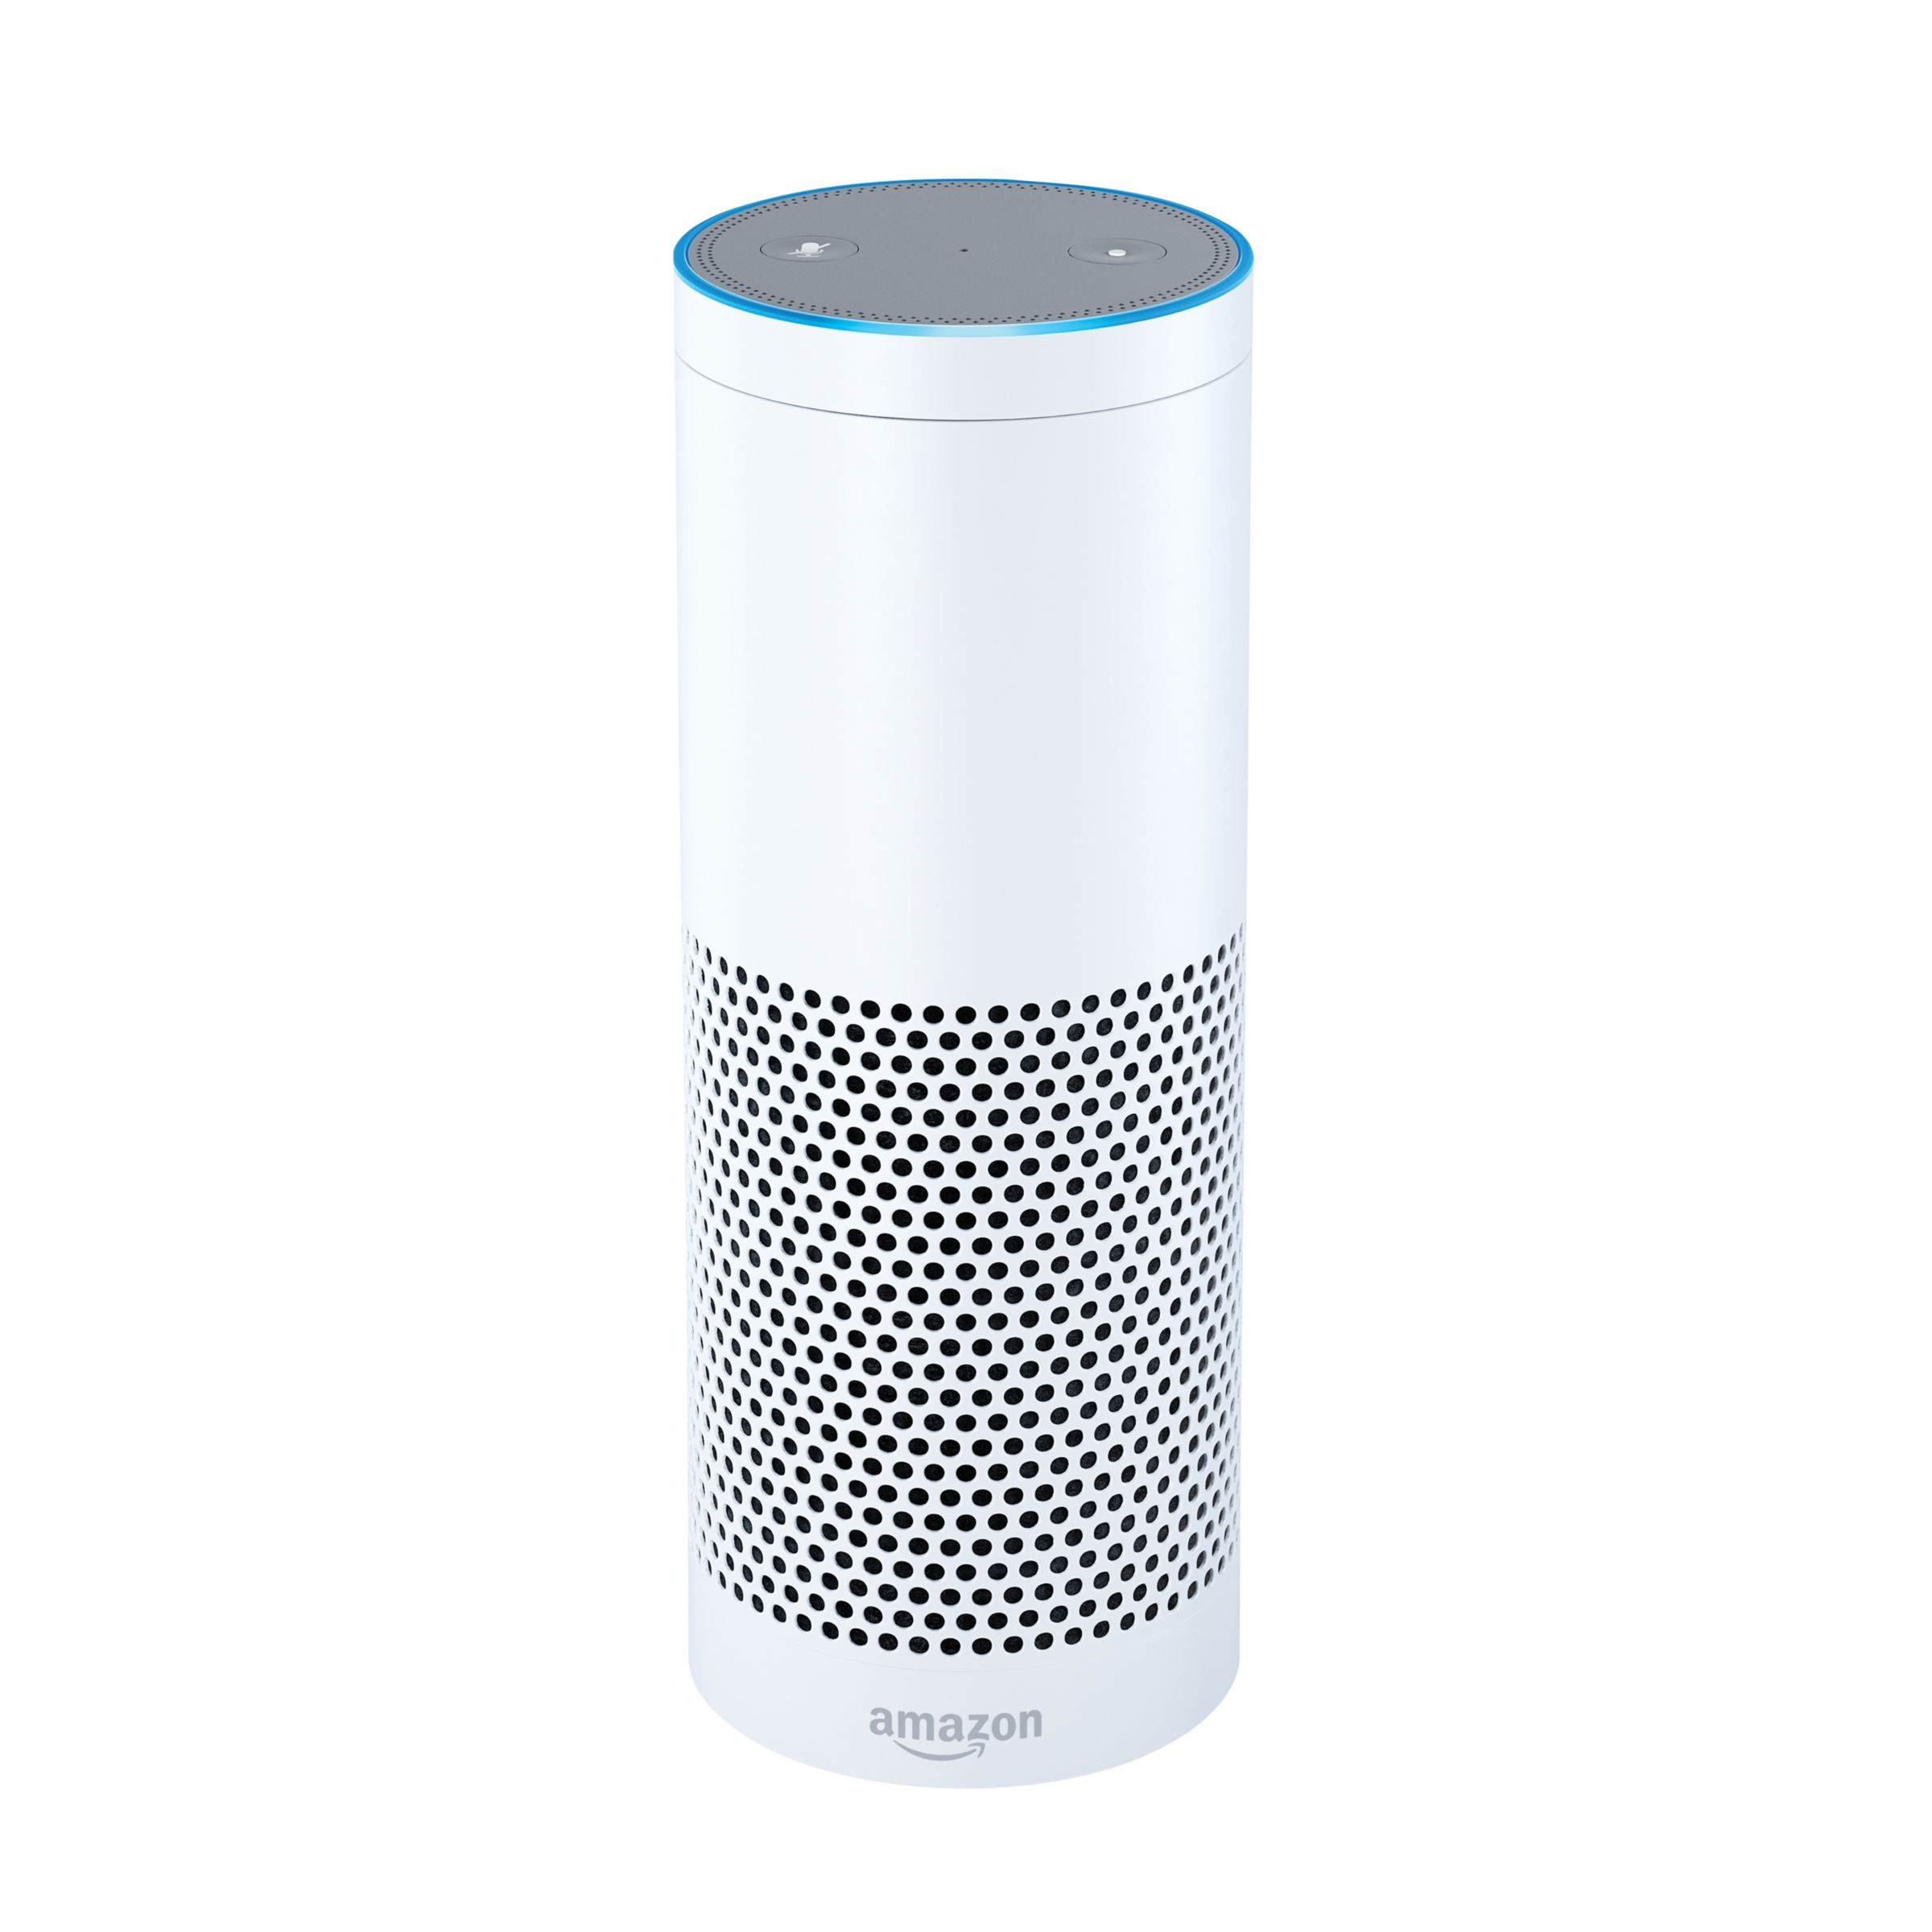 Amazon Amazon Echo Smart Speaker with Voice Recognition & Control